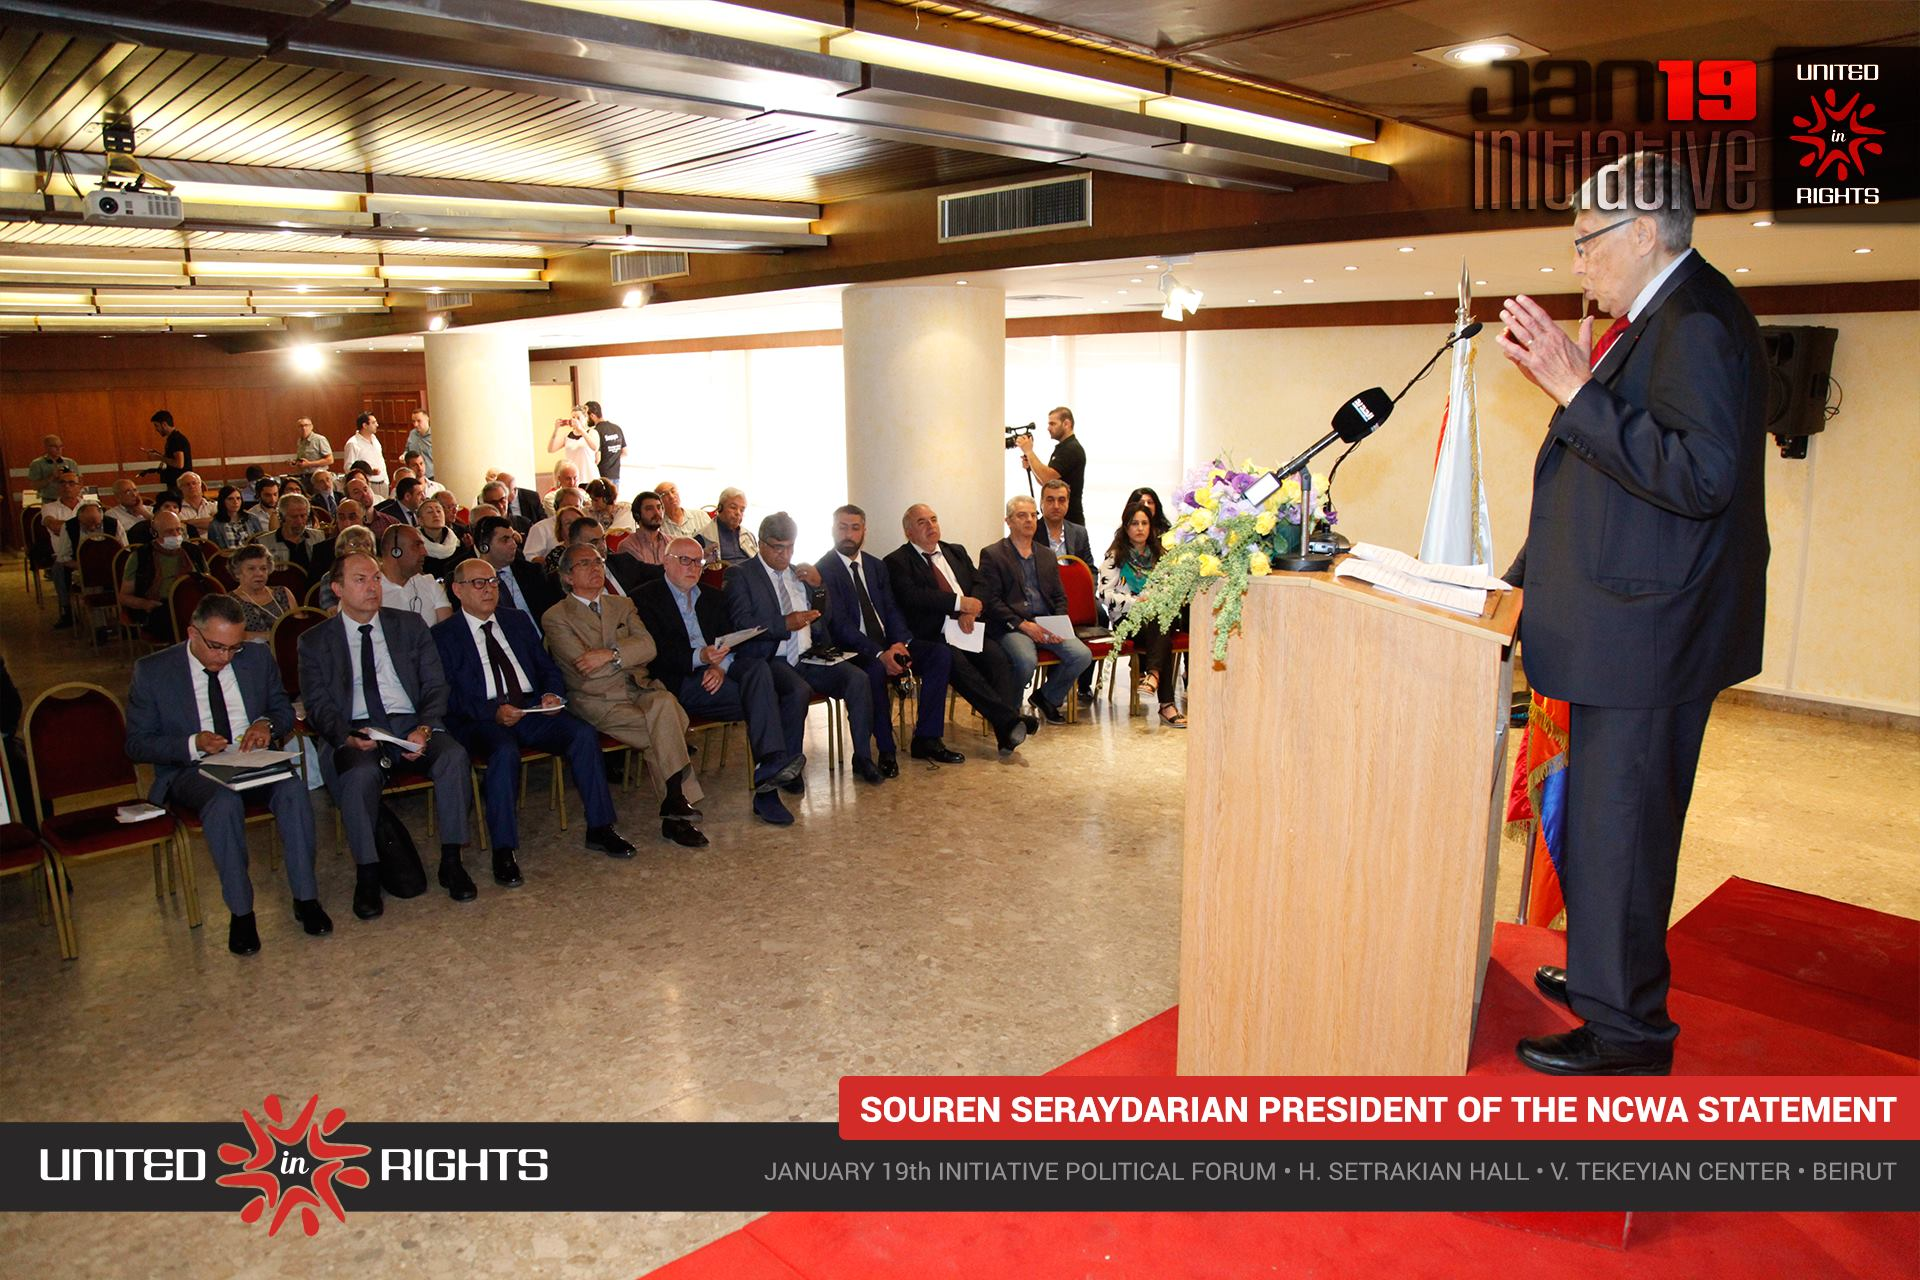 Mr. Souren Seraydarian's statement • president of the NCWA • January 19th Initiative Political Forum